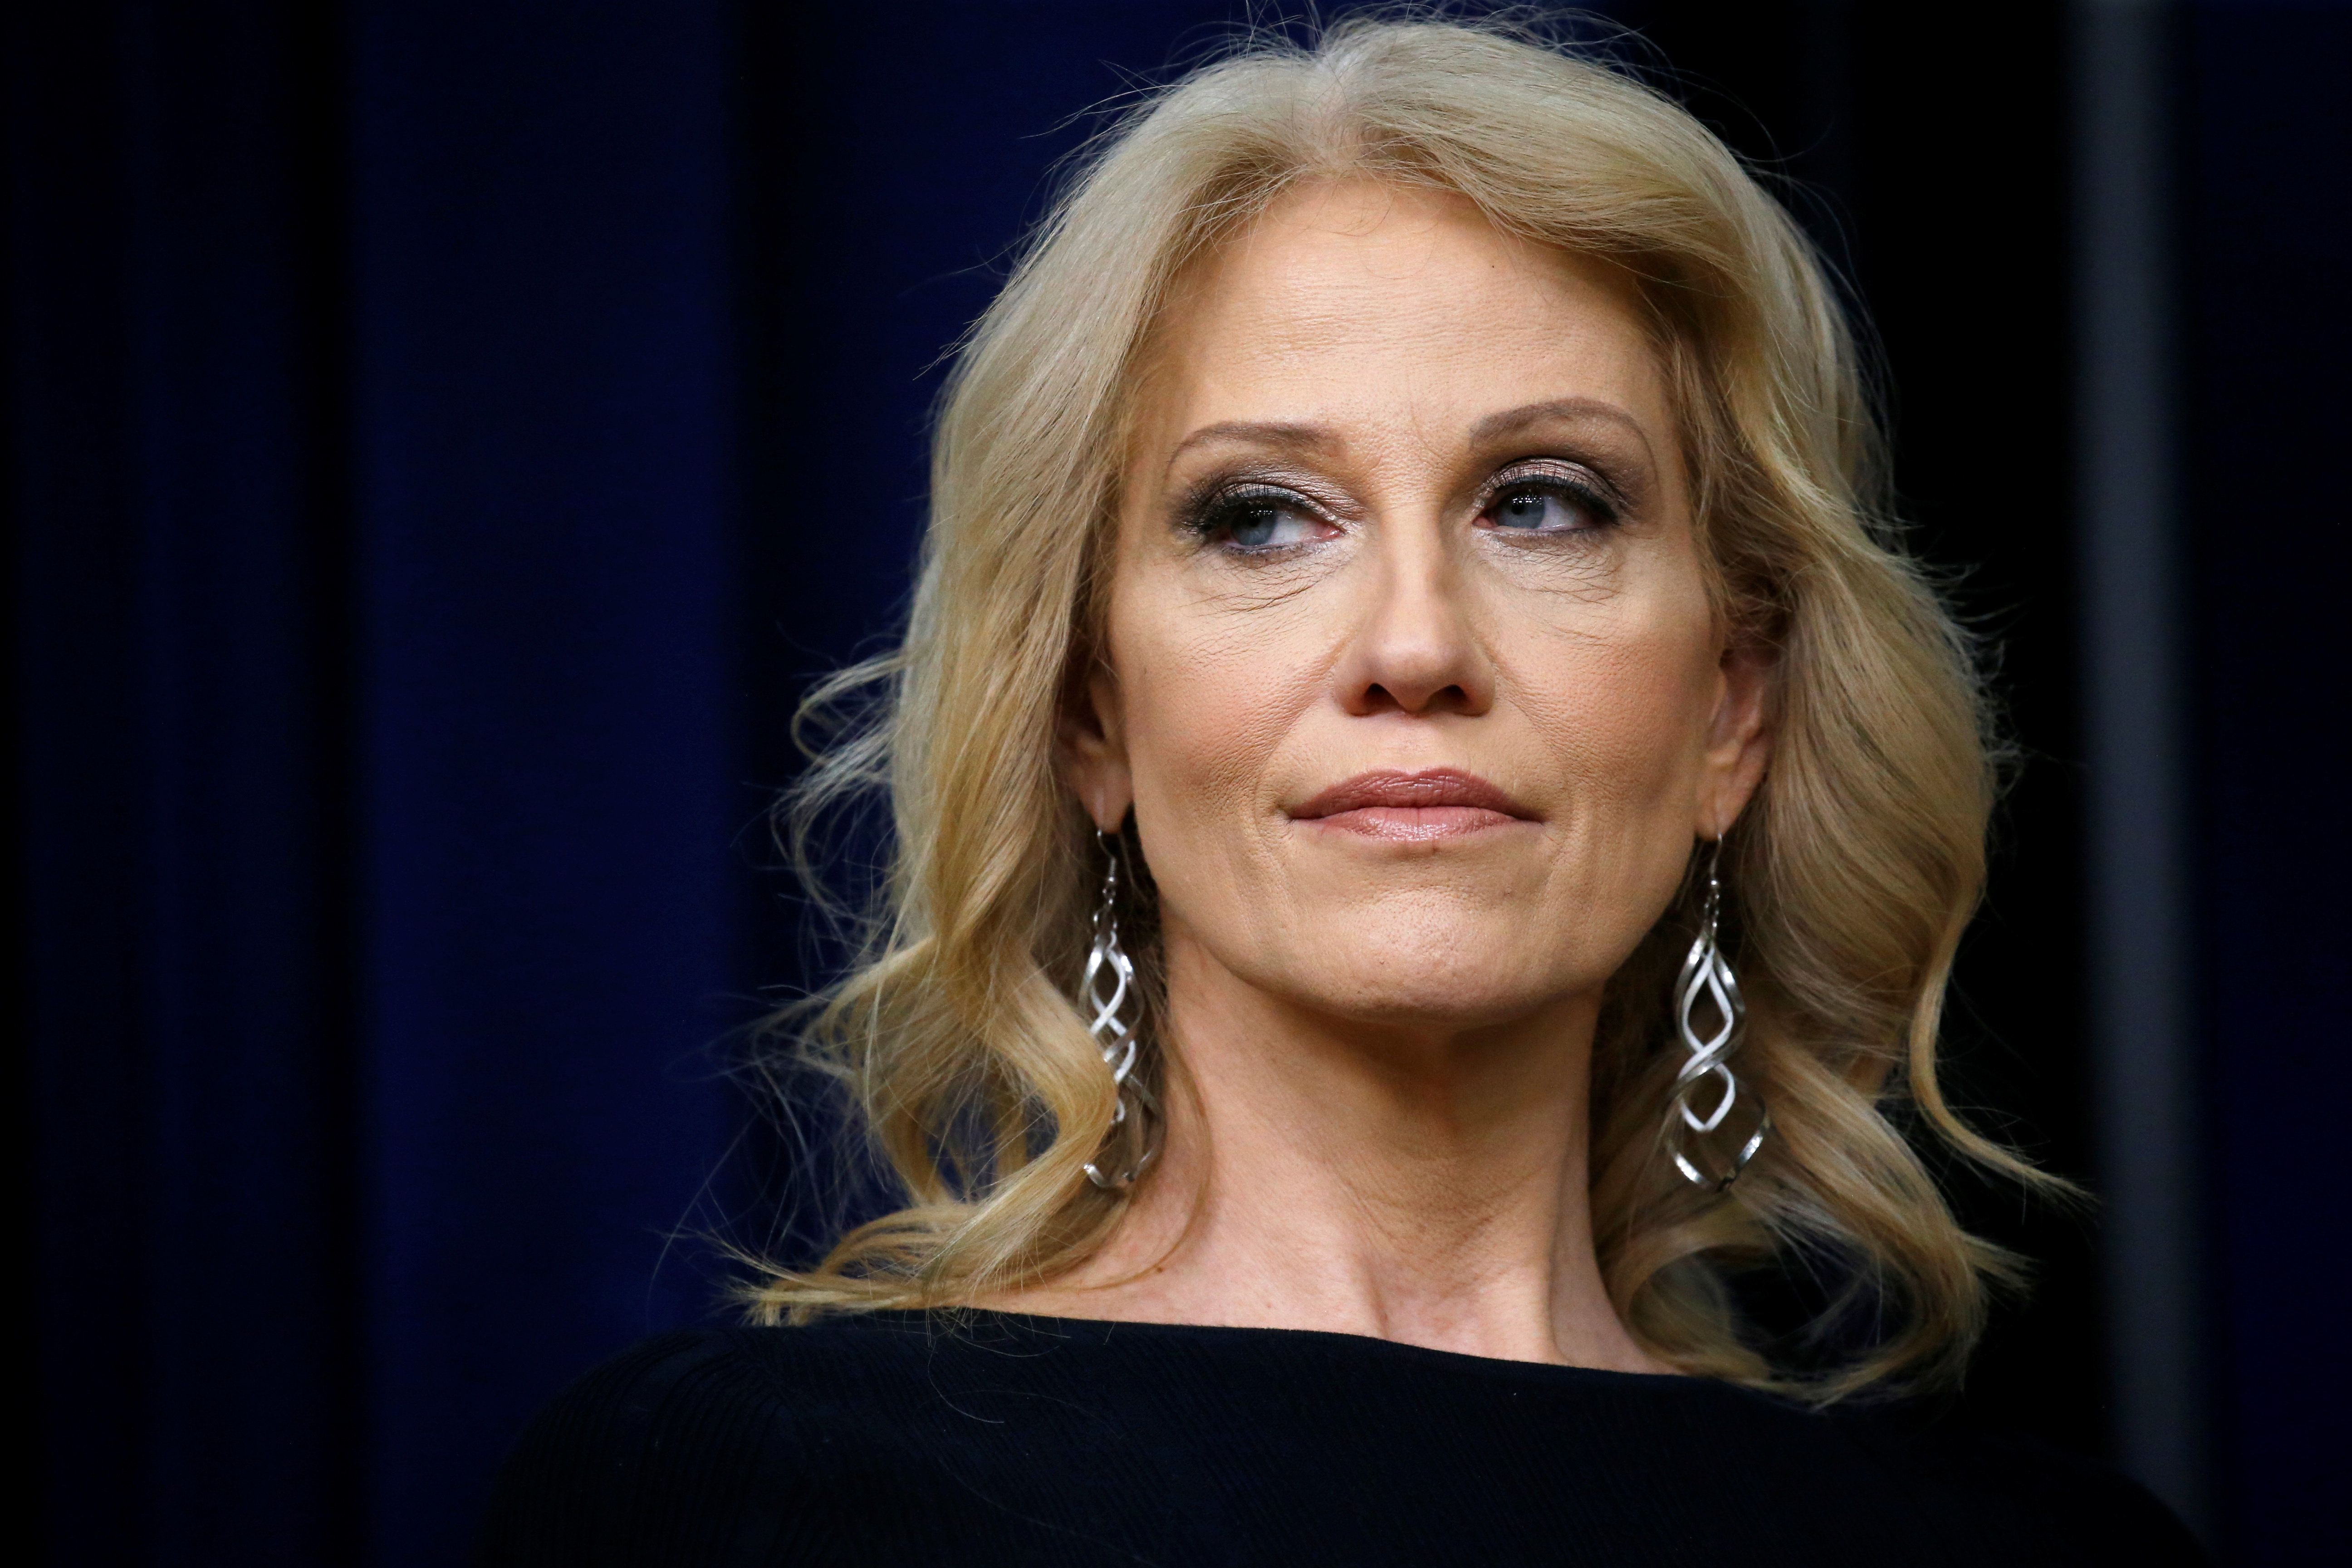 Kellyanne Conway, a top adviser to President Donald Trump.